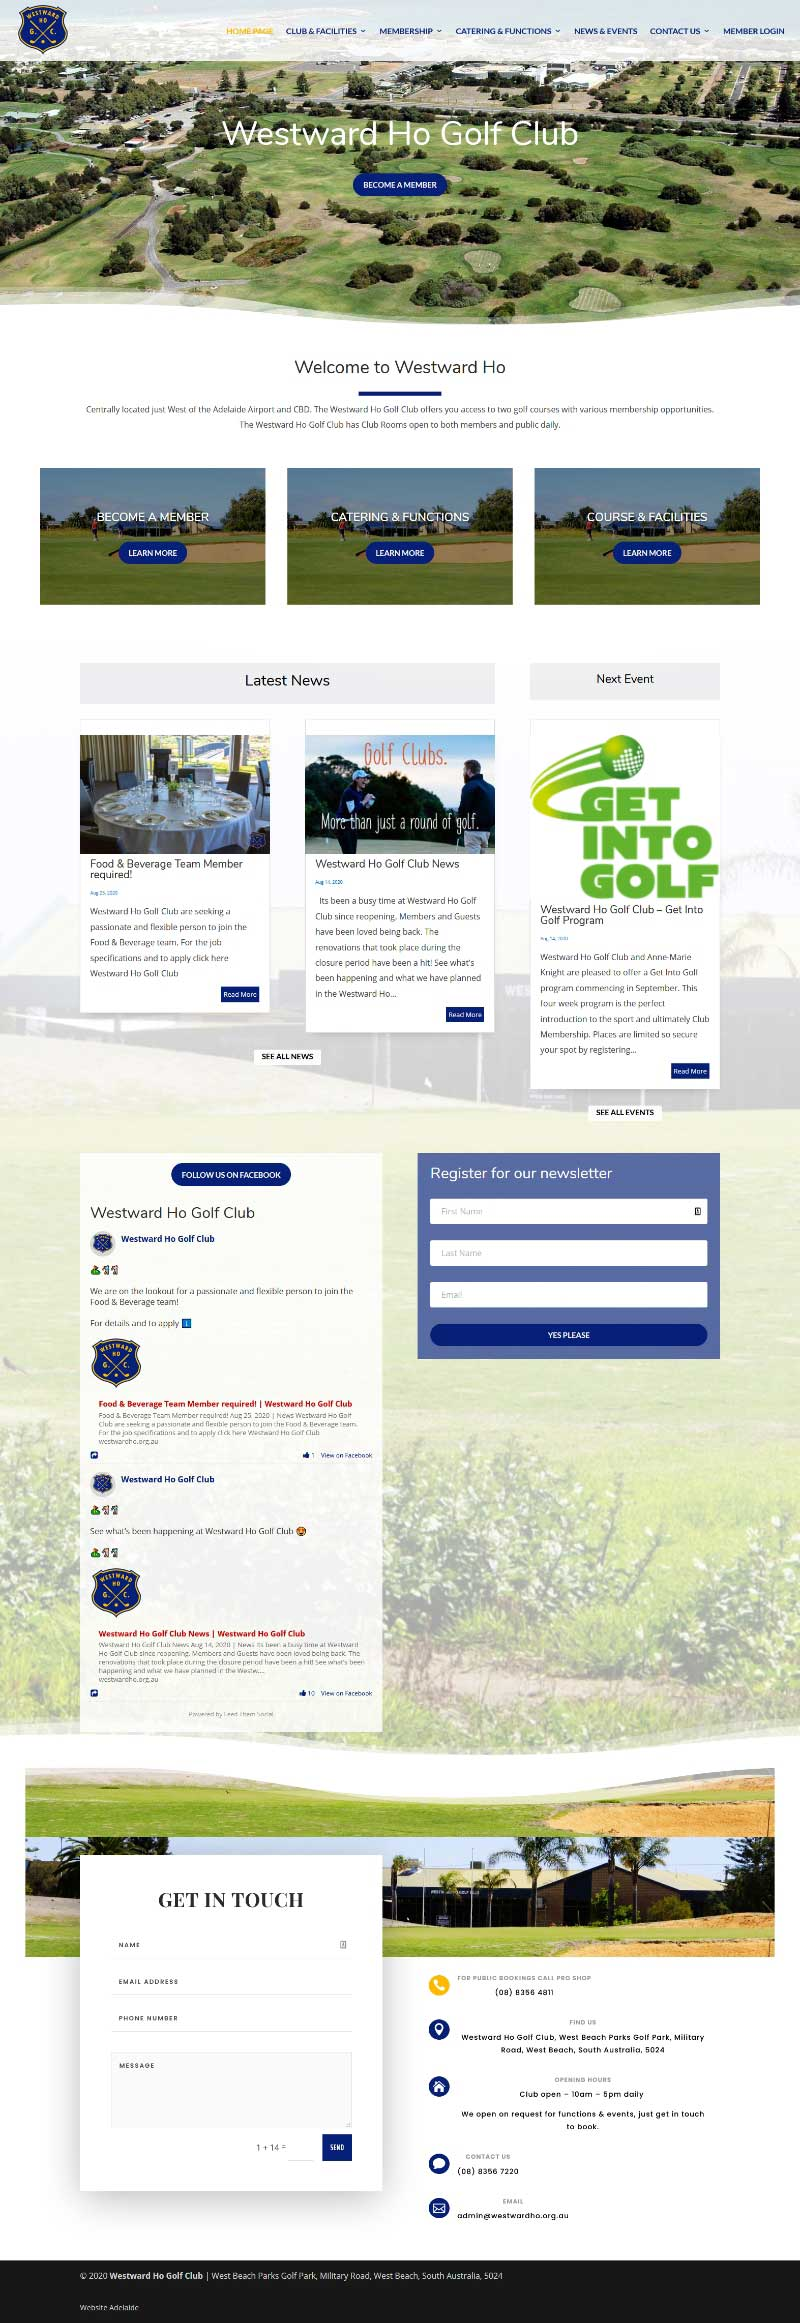 Website design for Westward Ho Golf Club